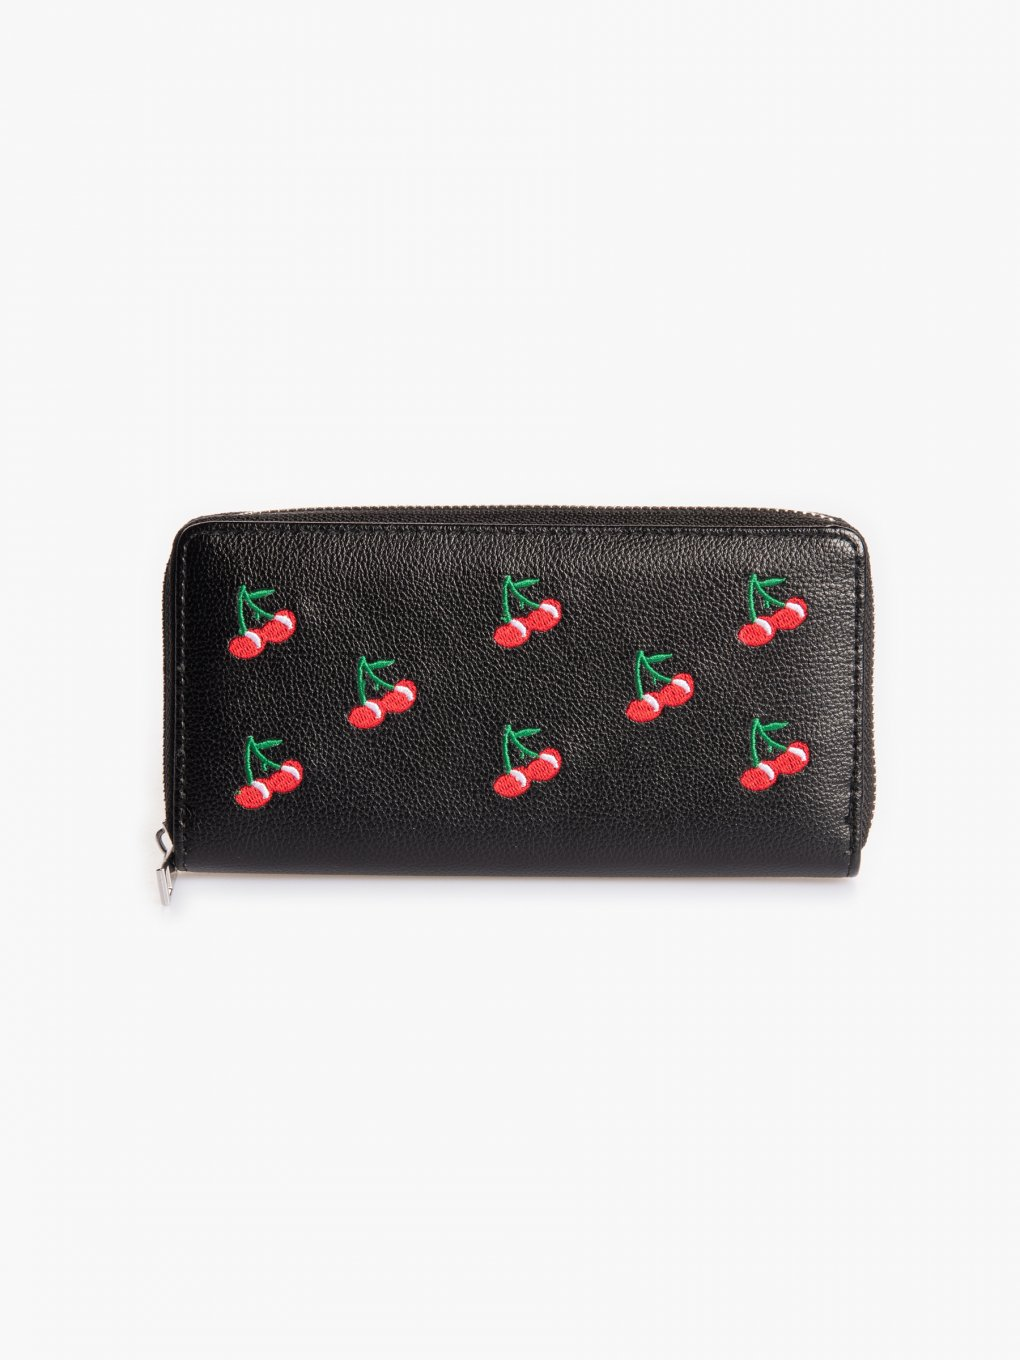 Wallet with cherry embroidery